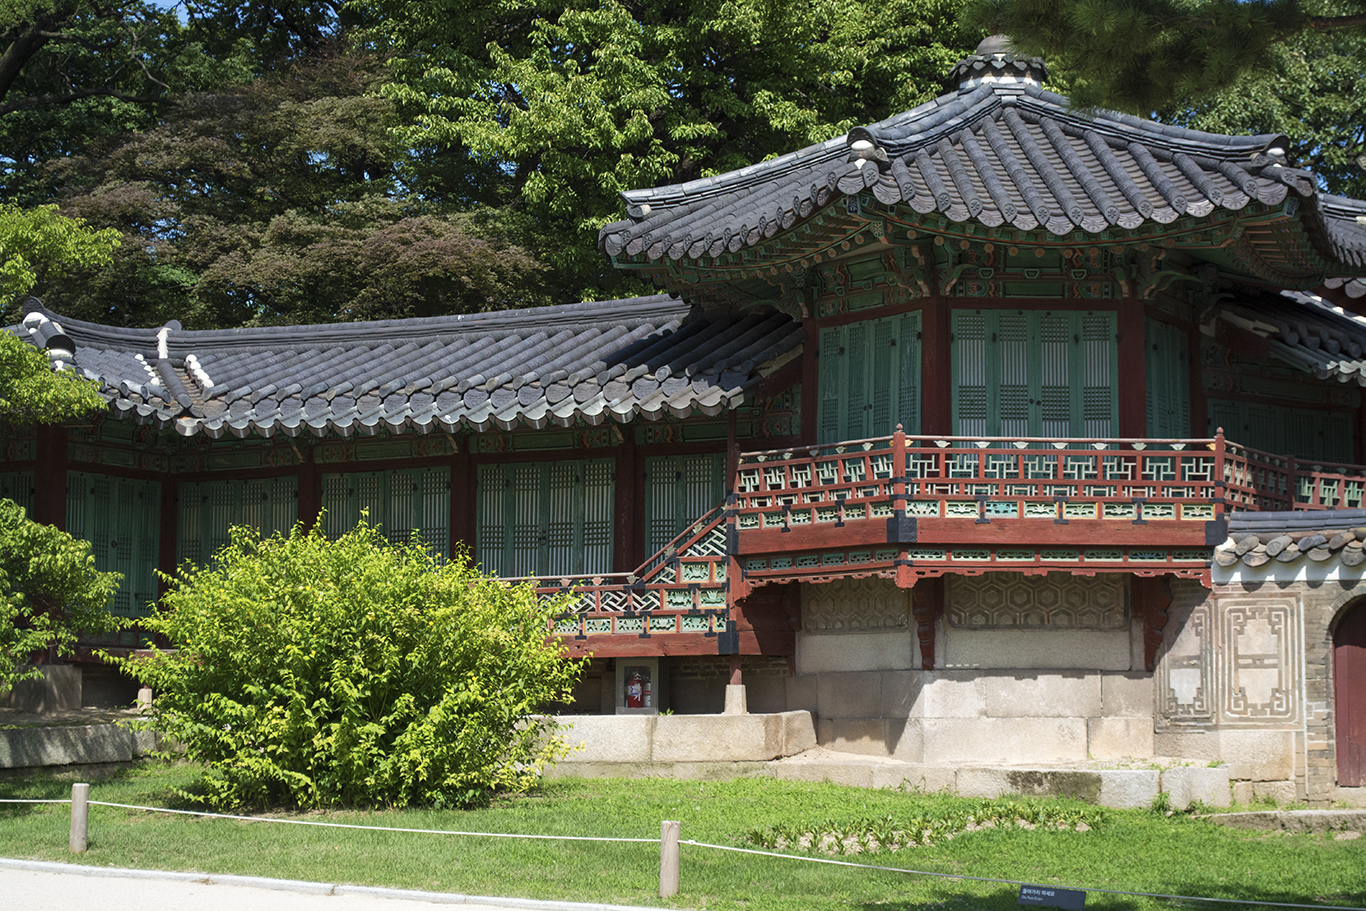 One of the restored historical buildings that mark the entrance to the Secret Garden in Changdeokgung Palace in Seoul. Changdeokgung Palace was added to the UNESCO World Heritage List in 1997 as an